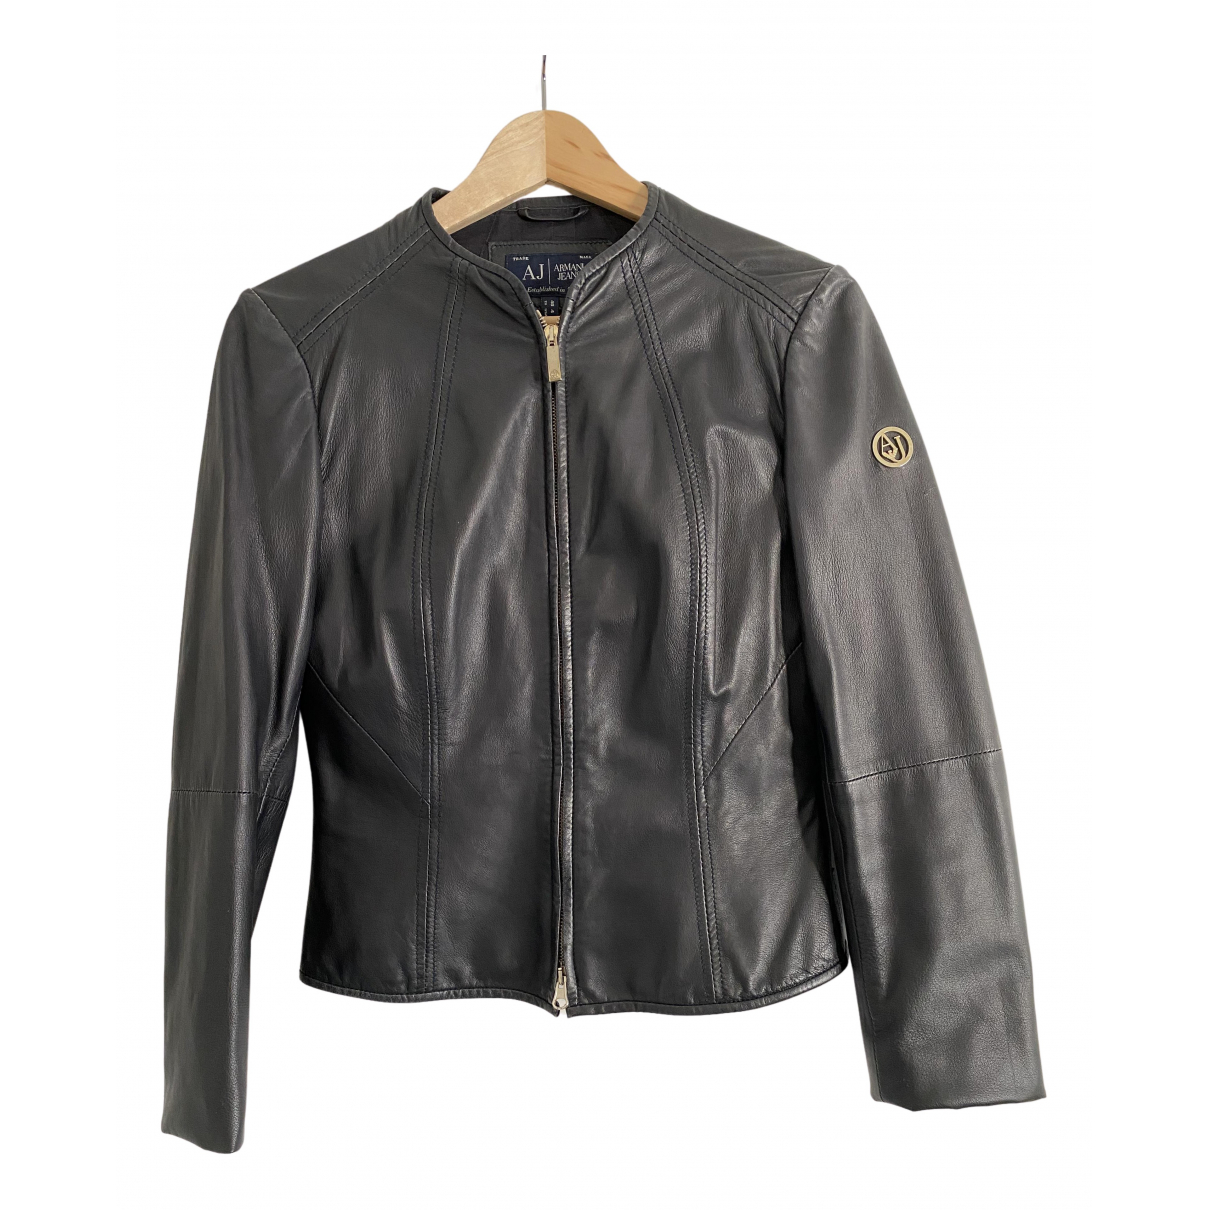 Armani Jeans N Blue Leather Leather jacket for Women 40 IT